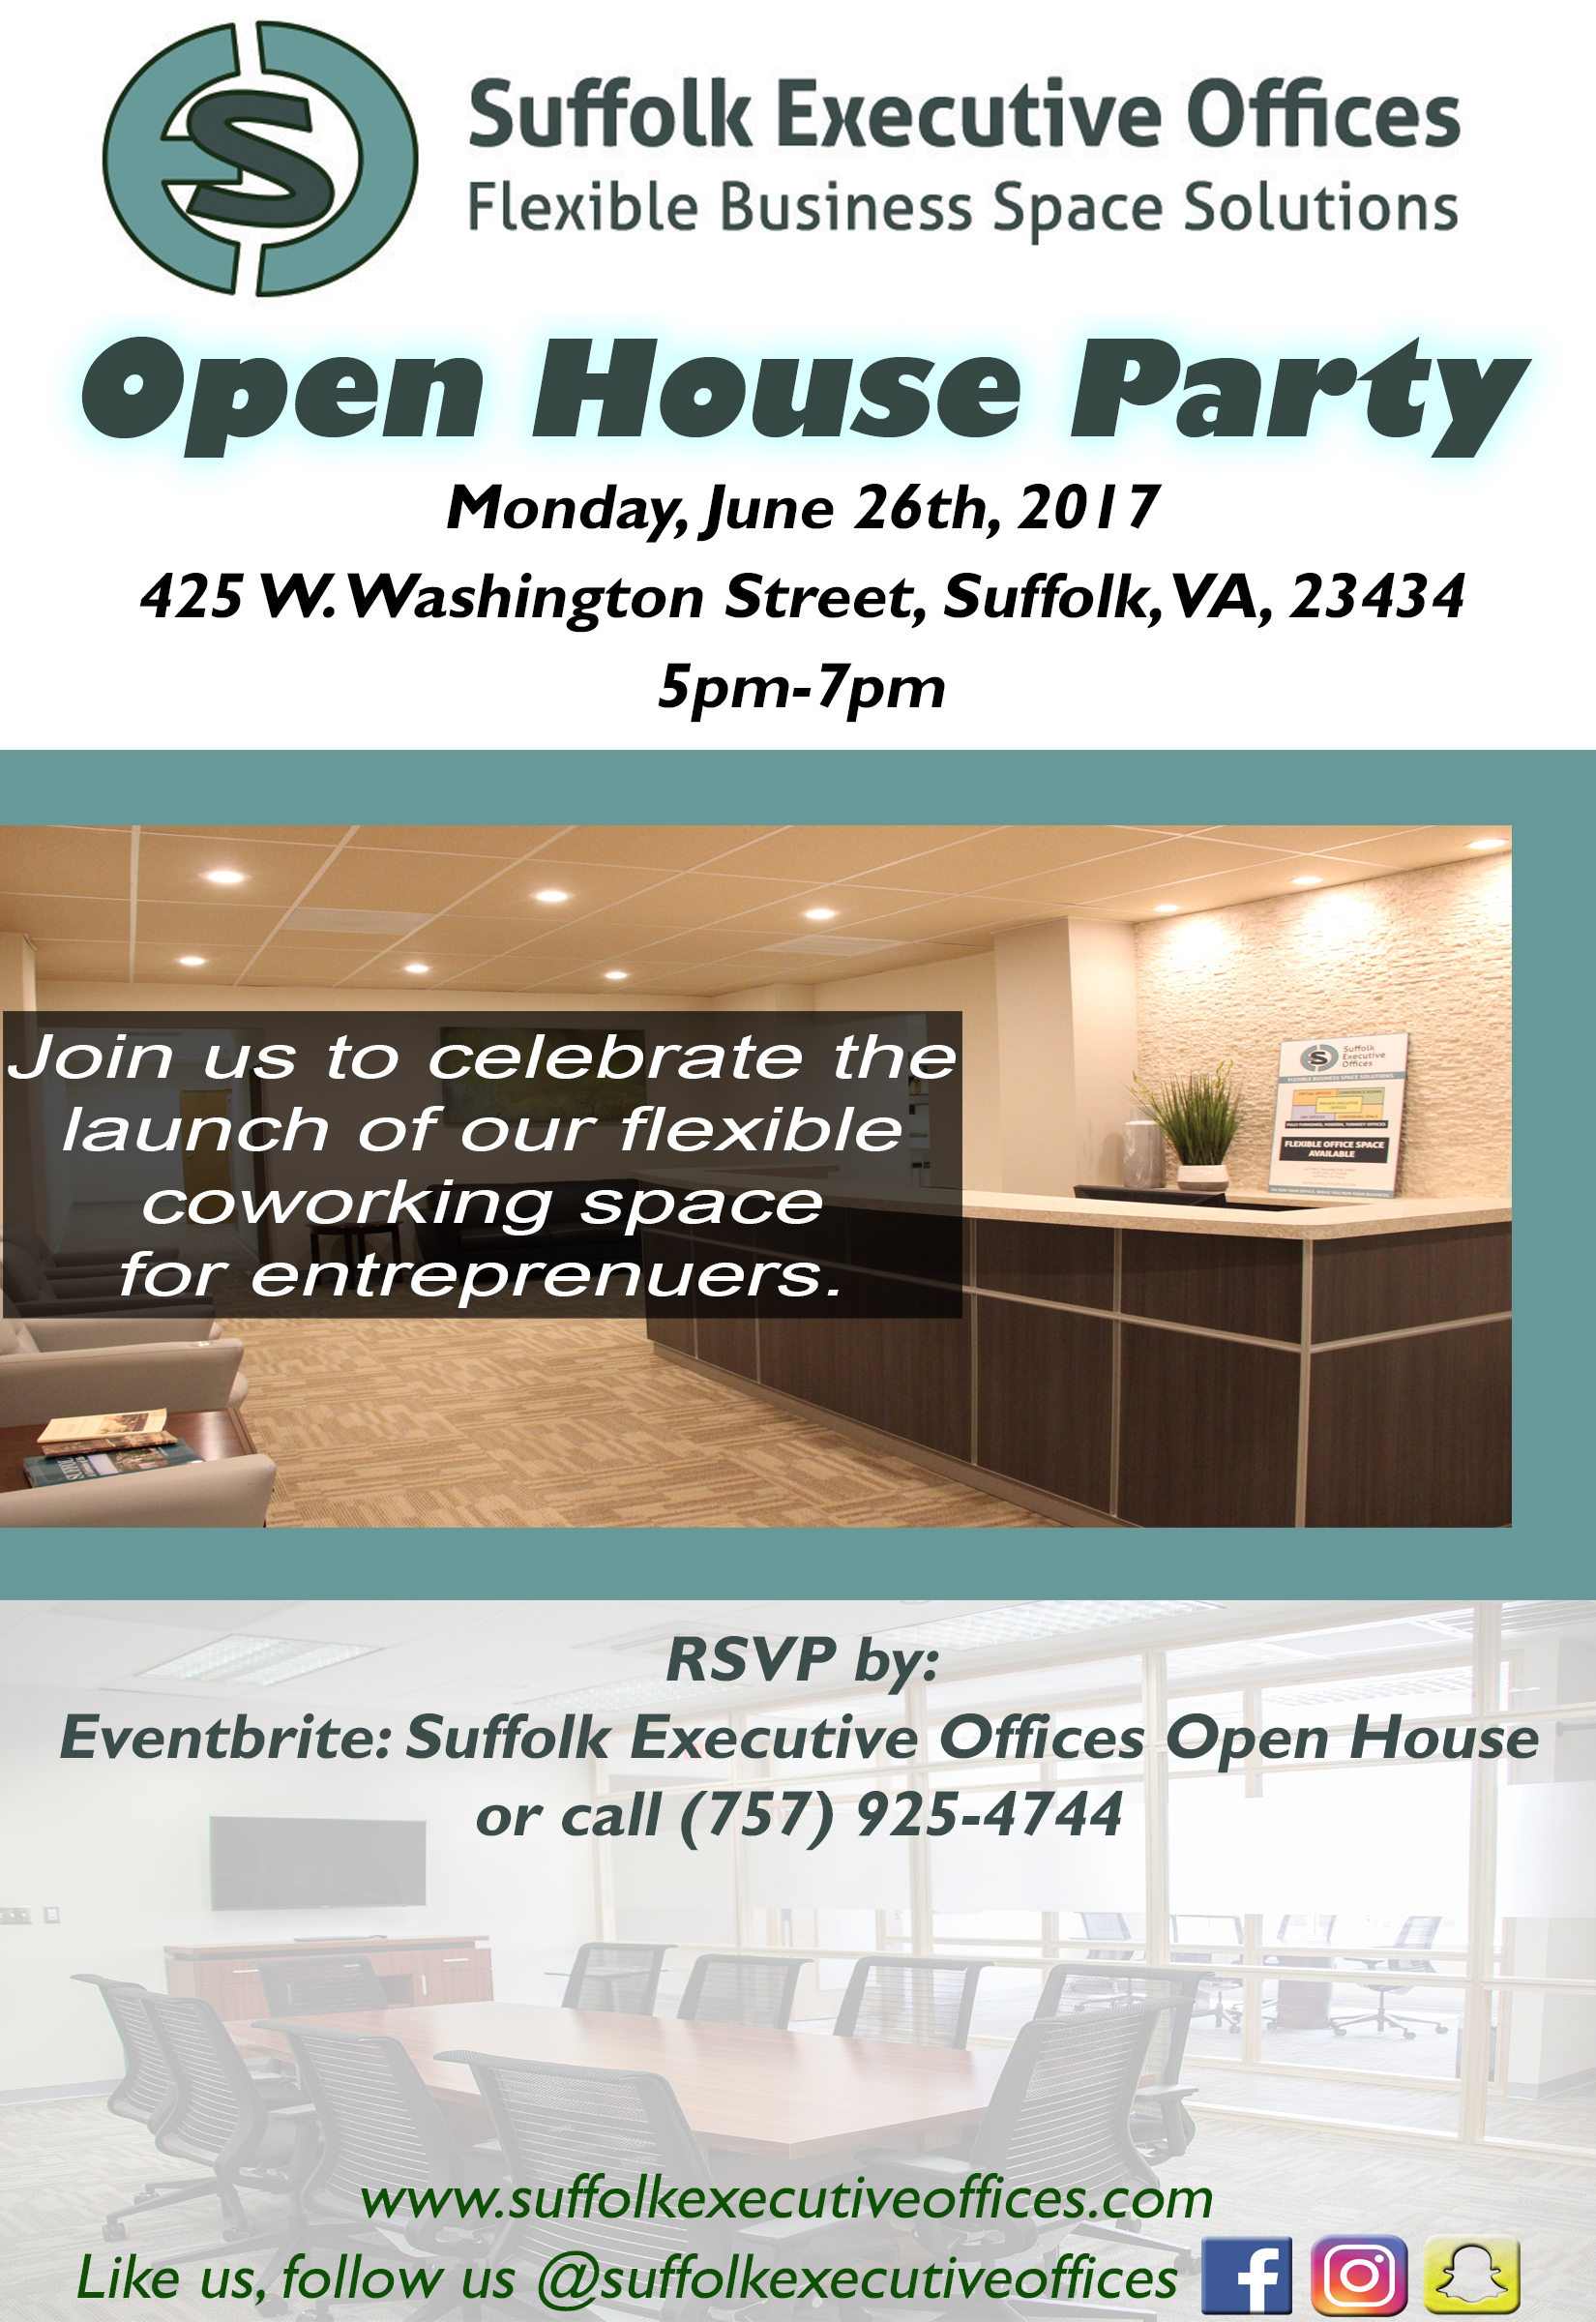 Suffolk Executive Offices Open House